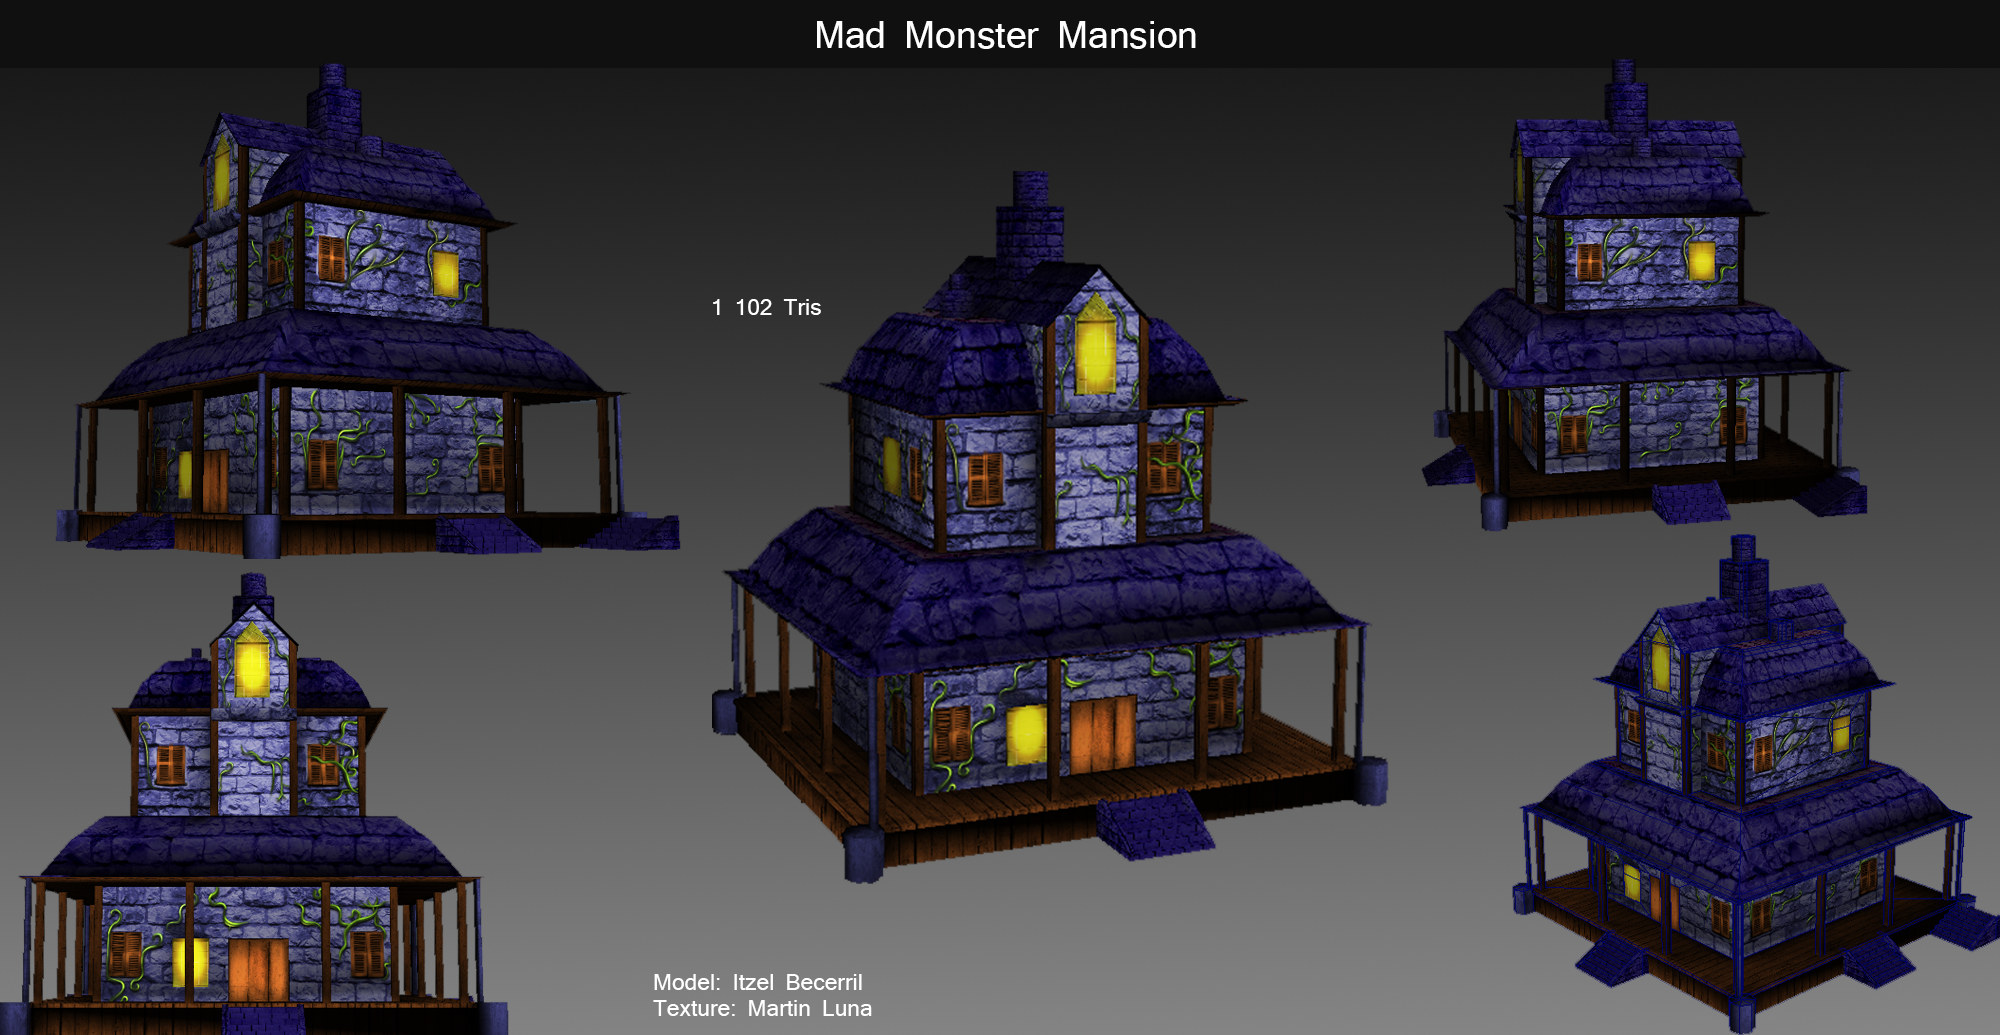 mad monster mansion by xlithx on deviantart